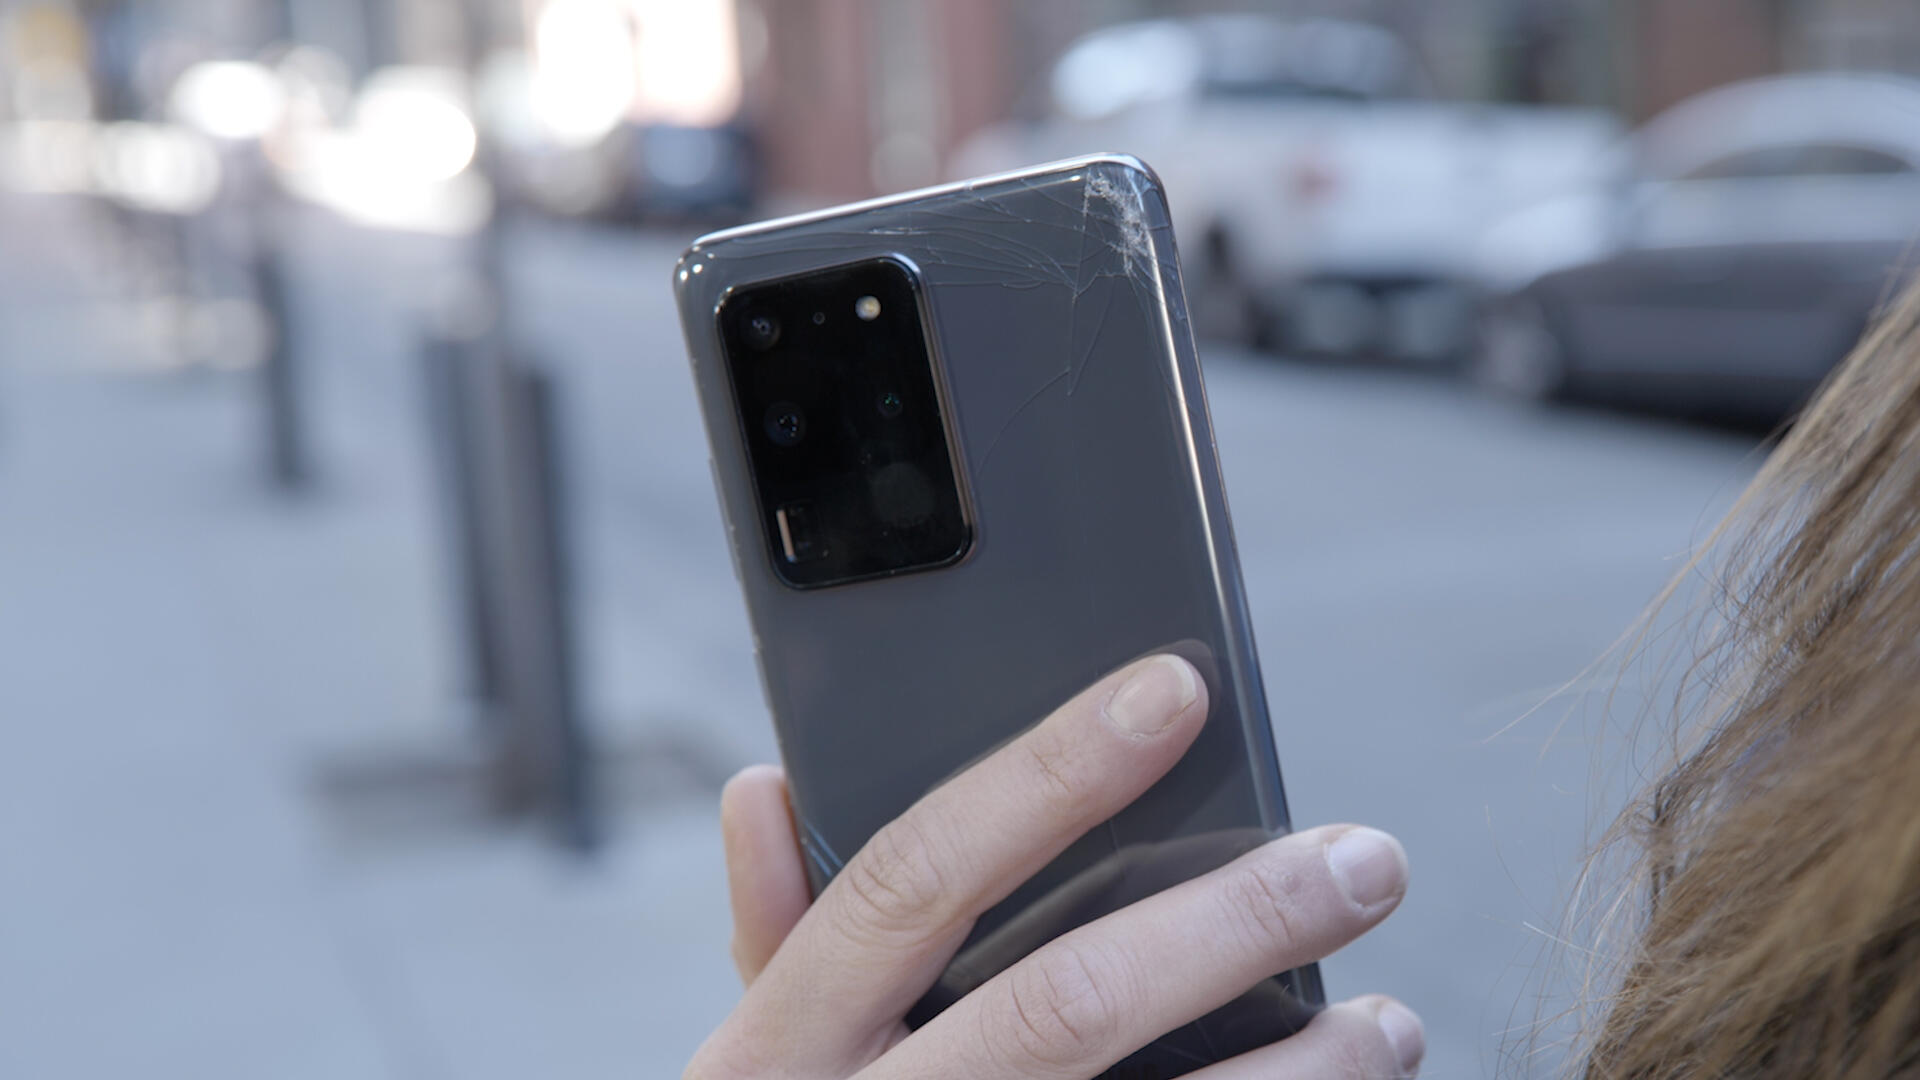 Video: The Galaxy S20 Ultra shattered, but the camera survived